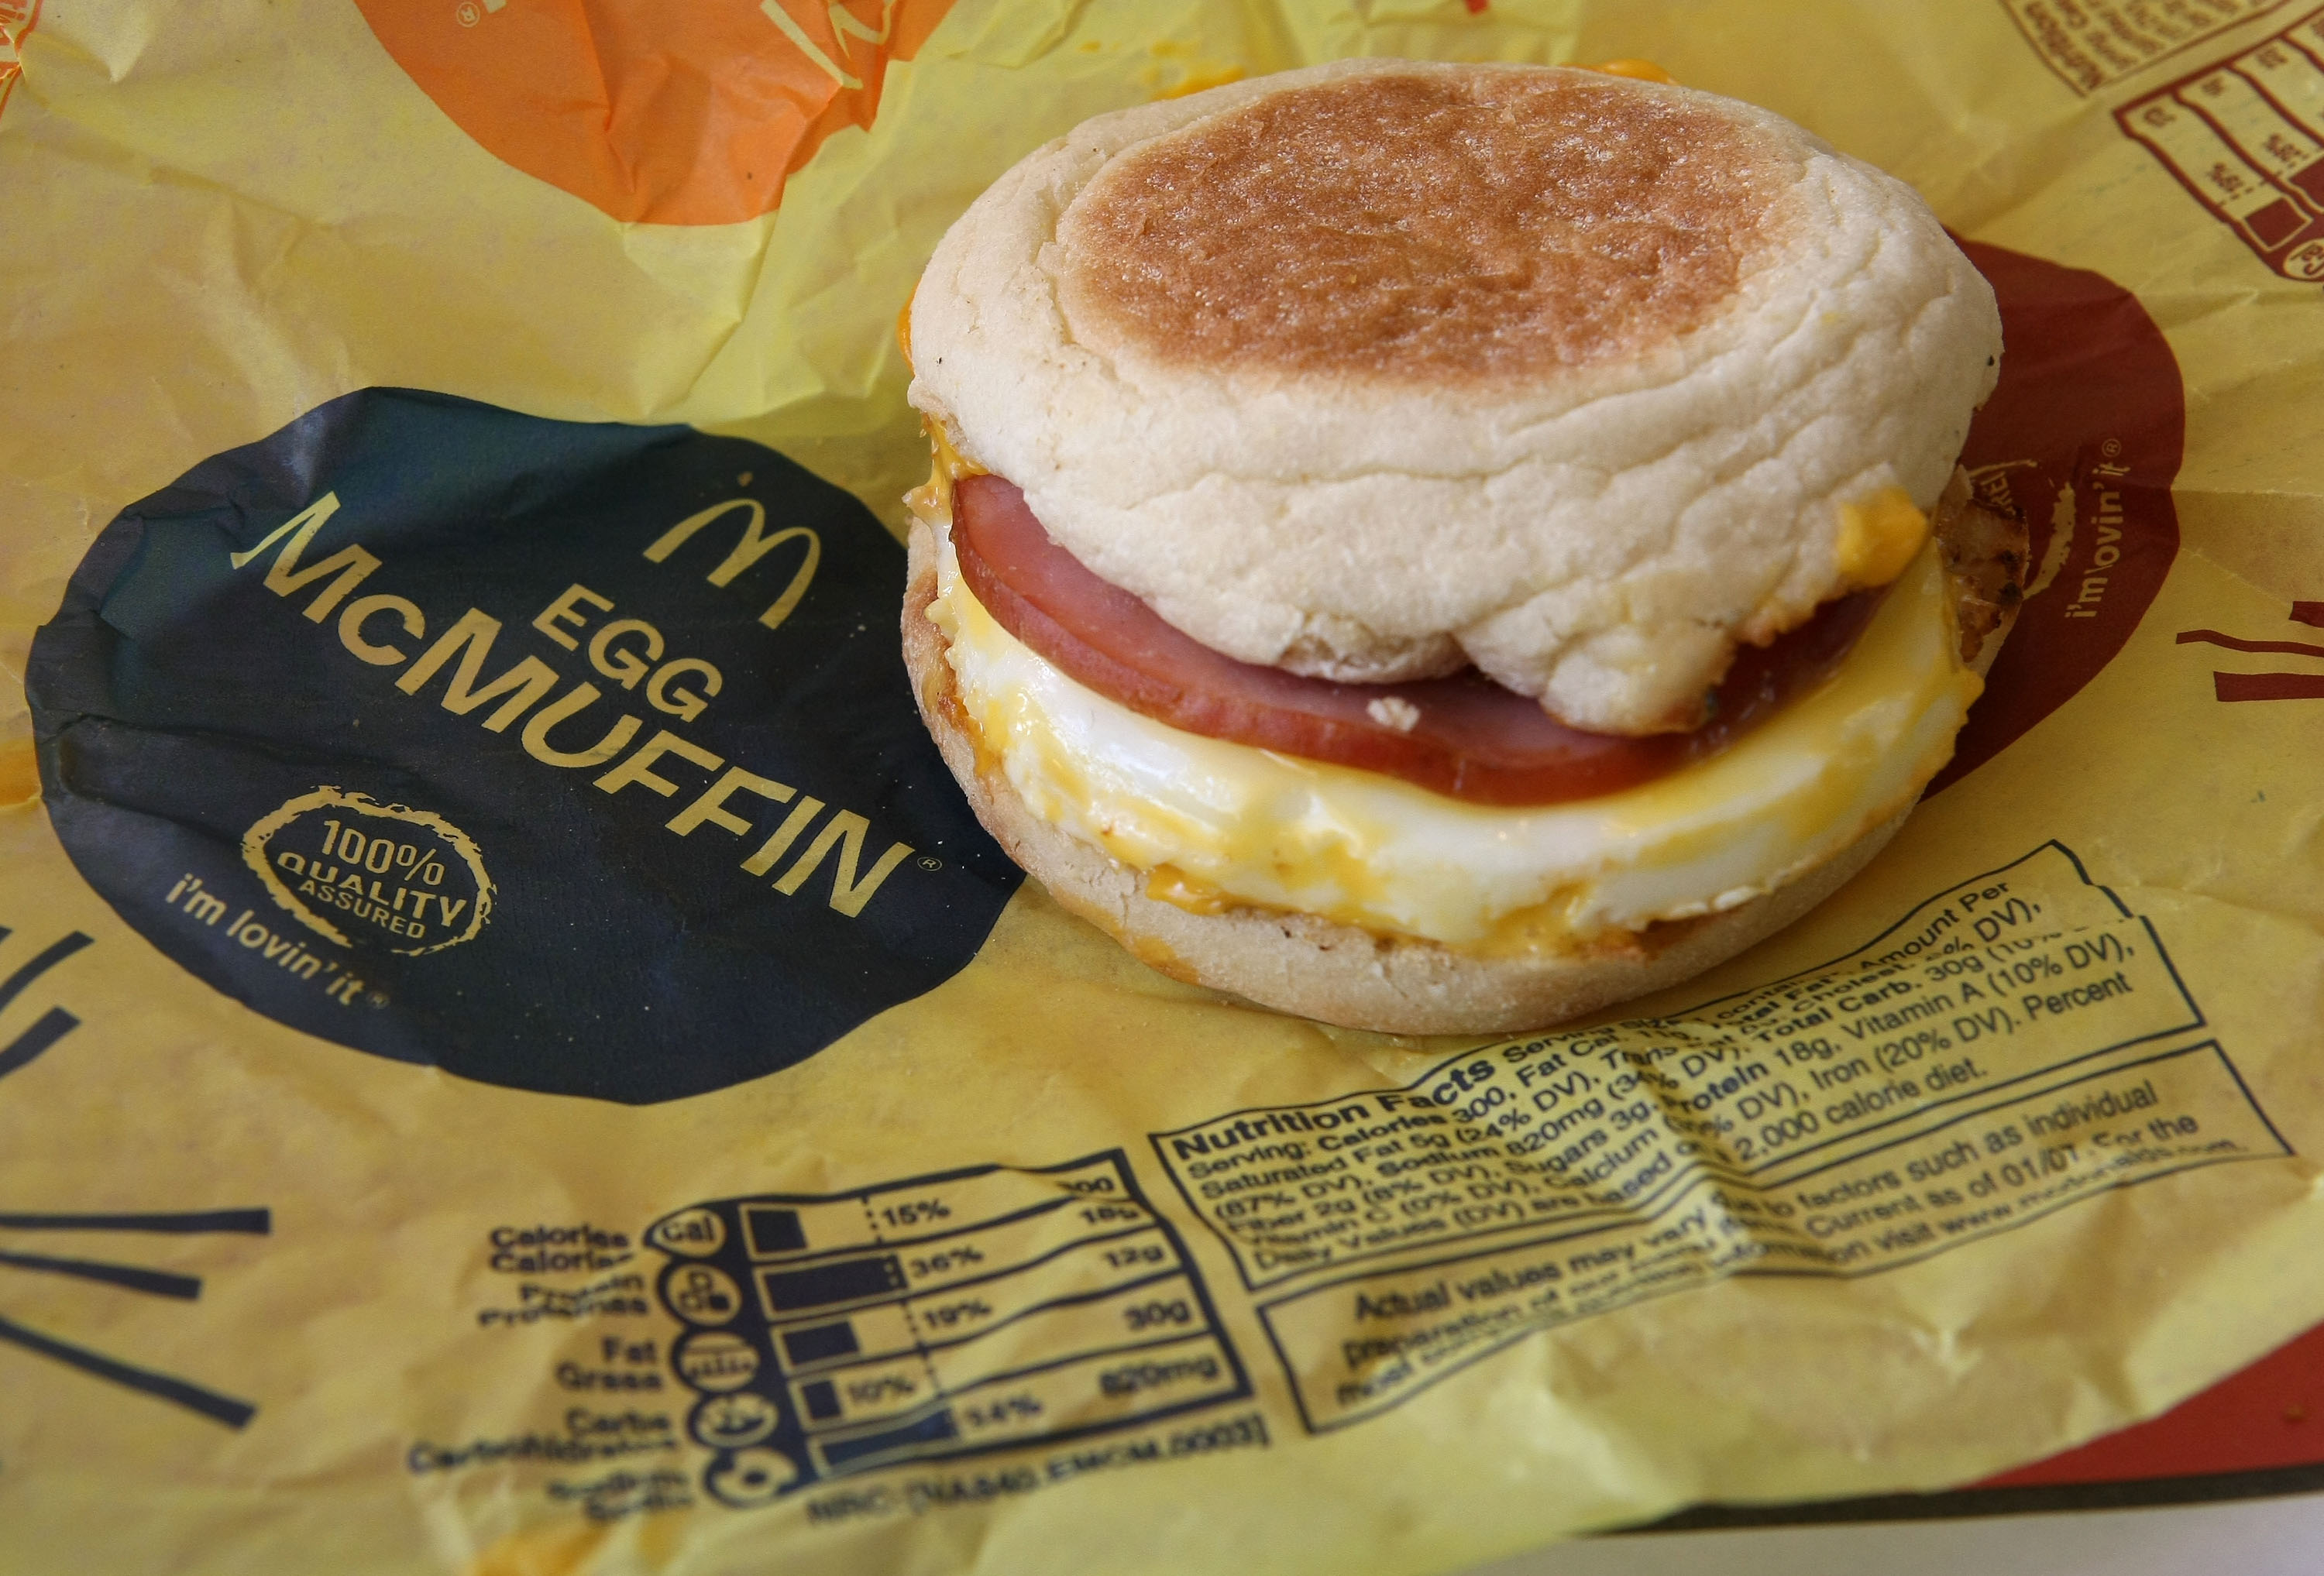 Why McDonald's almost didn't want the Egg McMuffin on its menu